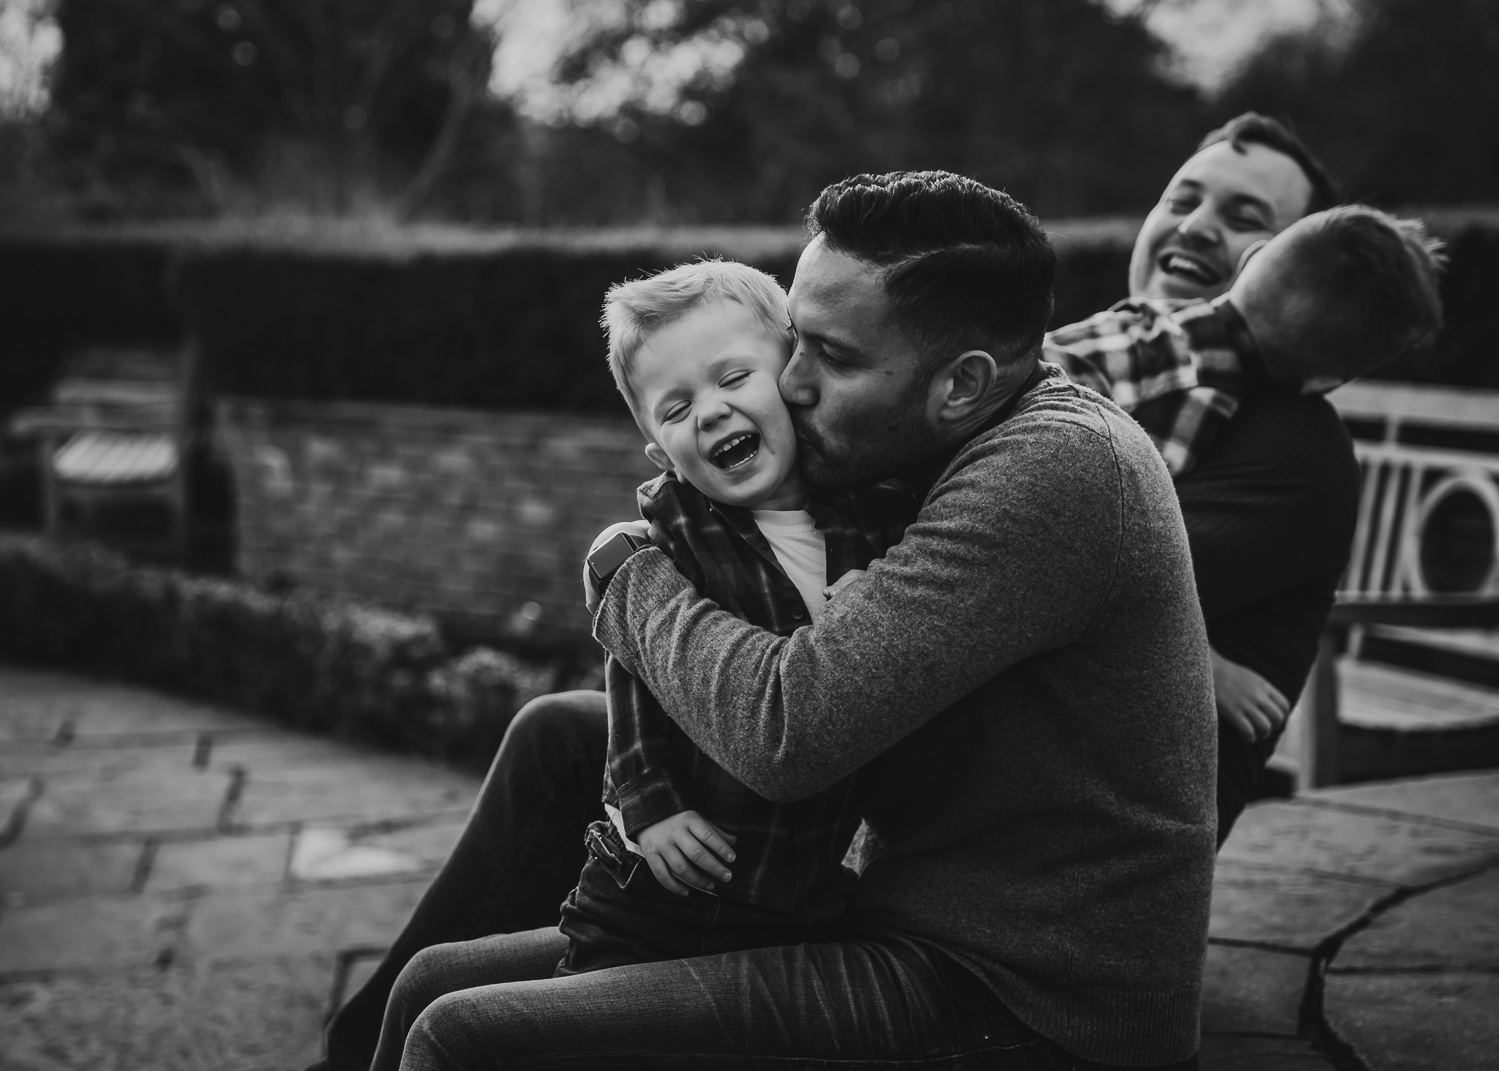 LGBTQ father deeply hugging adopted son